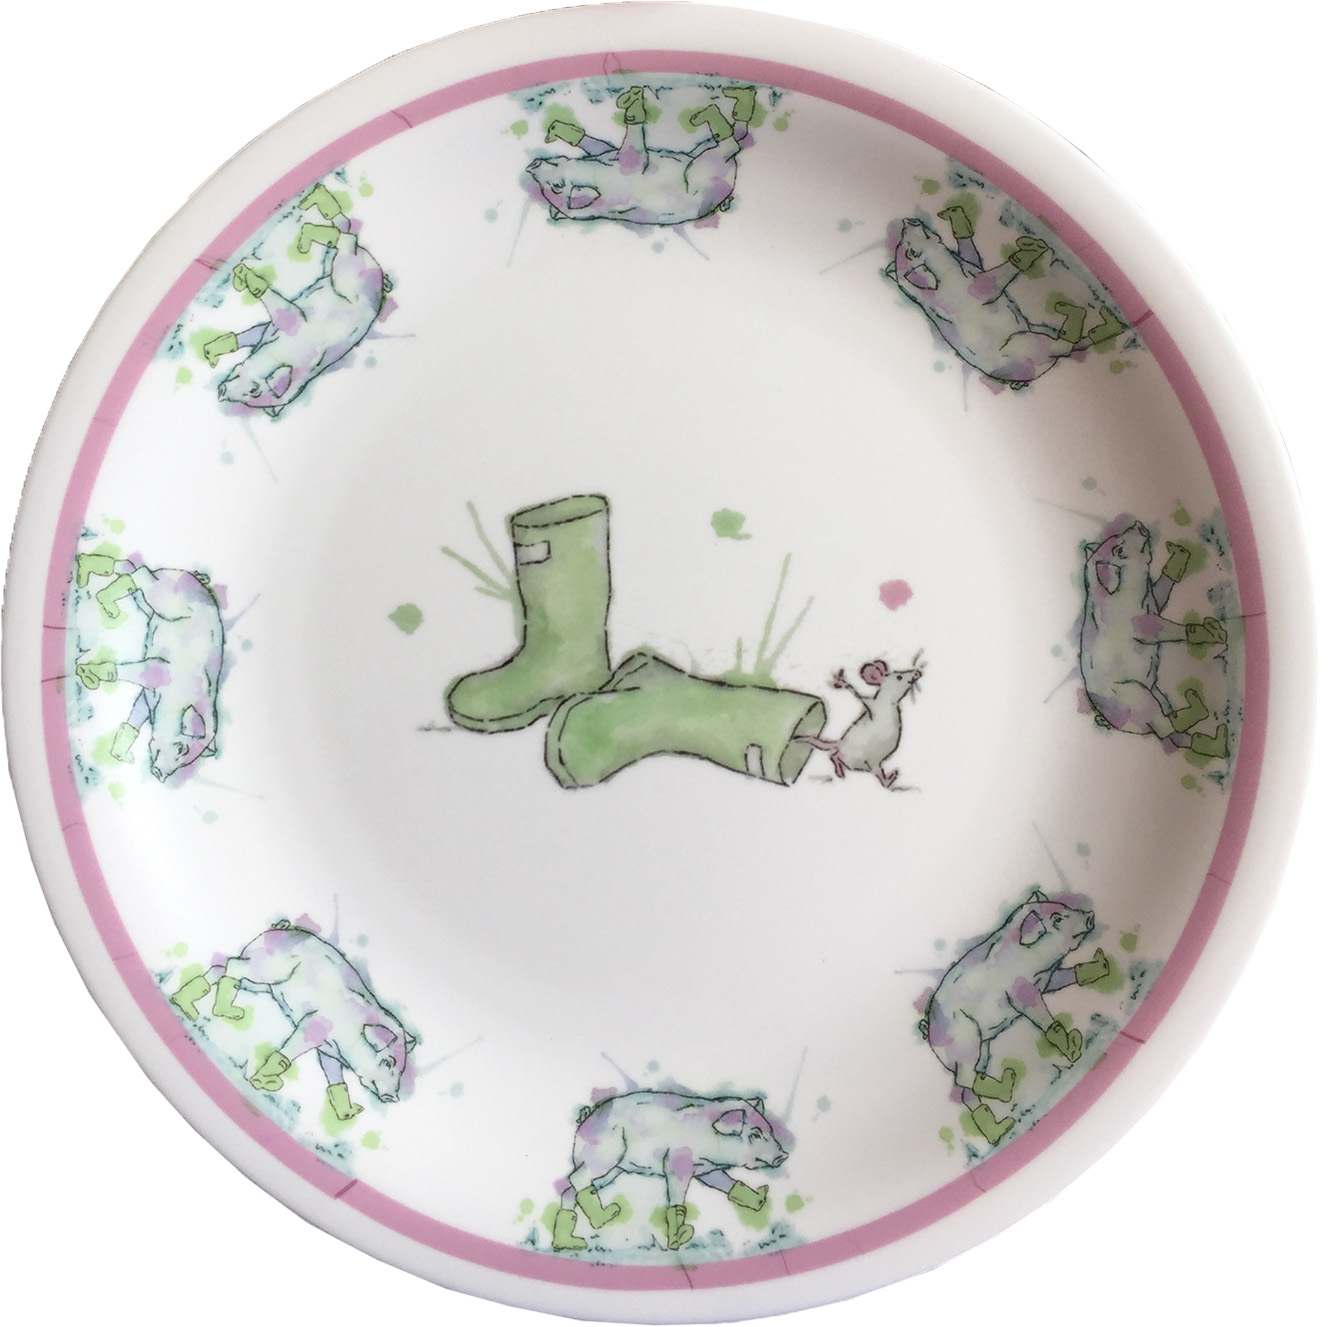 Mousey Plate - £8.00